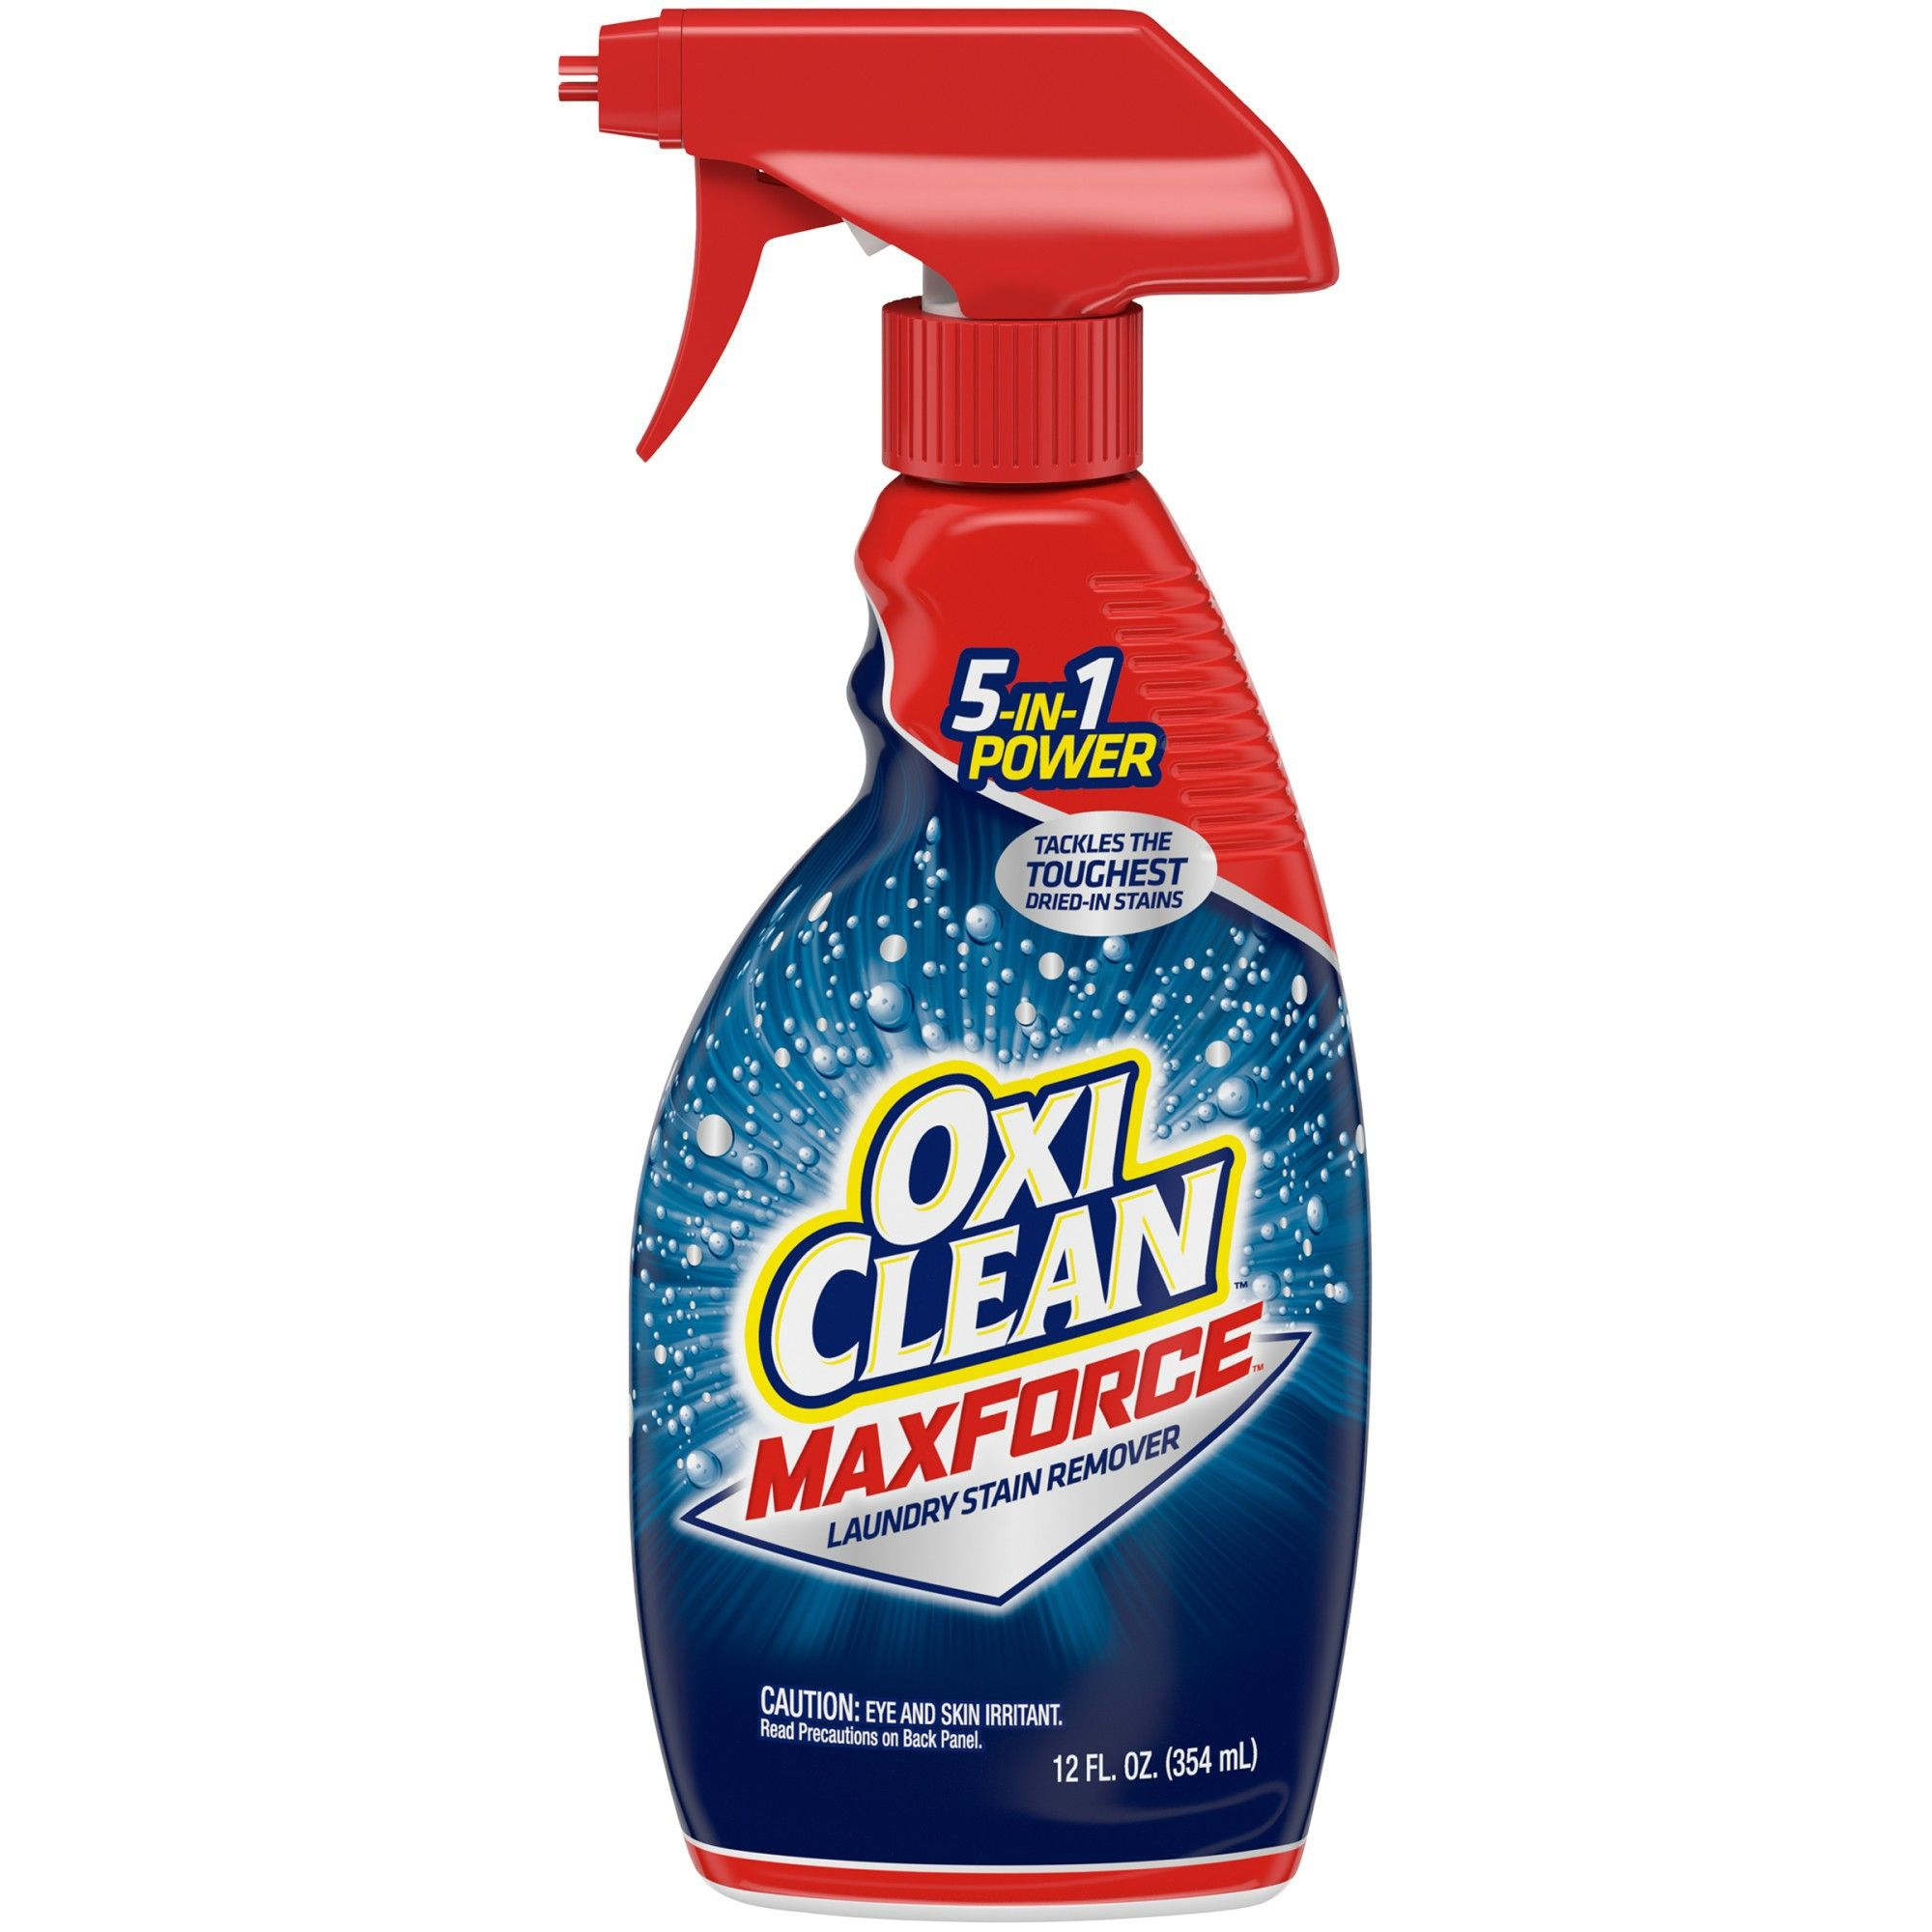 Oxiclean Maxforce Laundry Stain Remover Spray 12 Fl Oz With